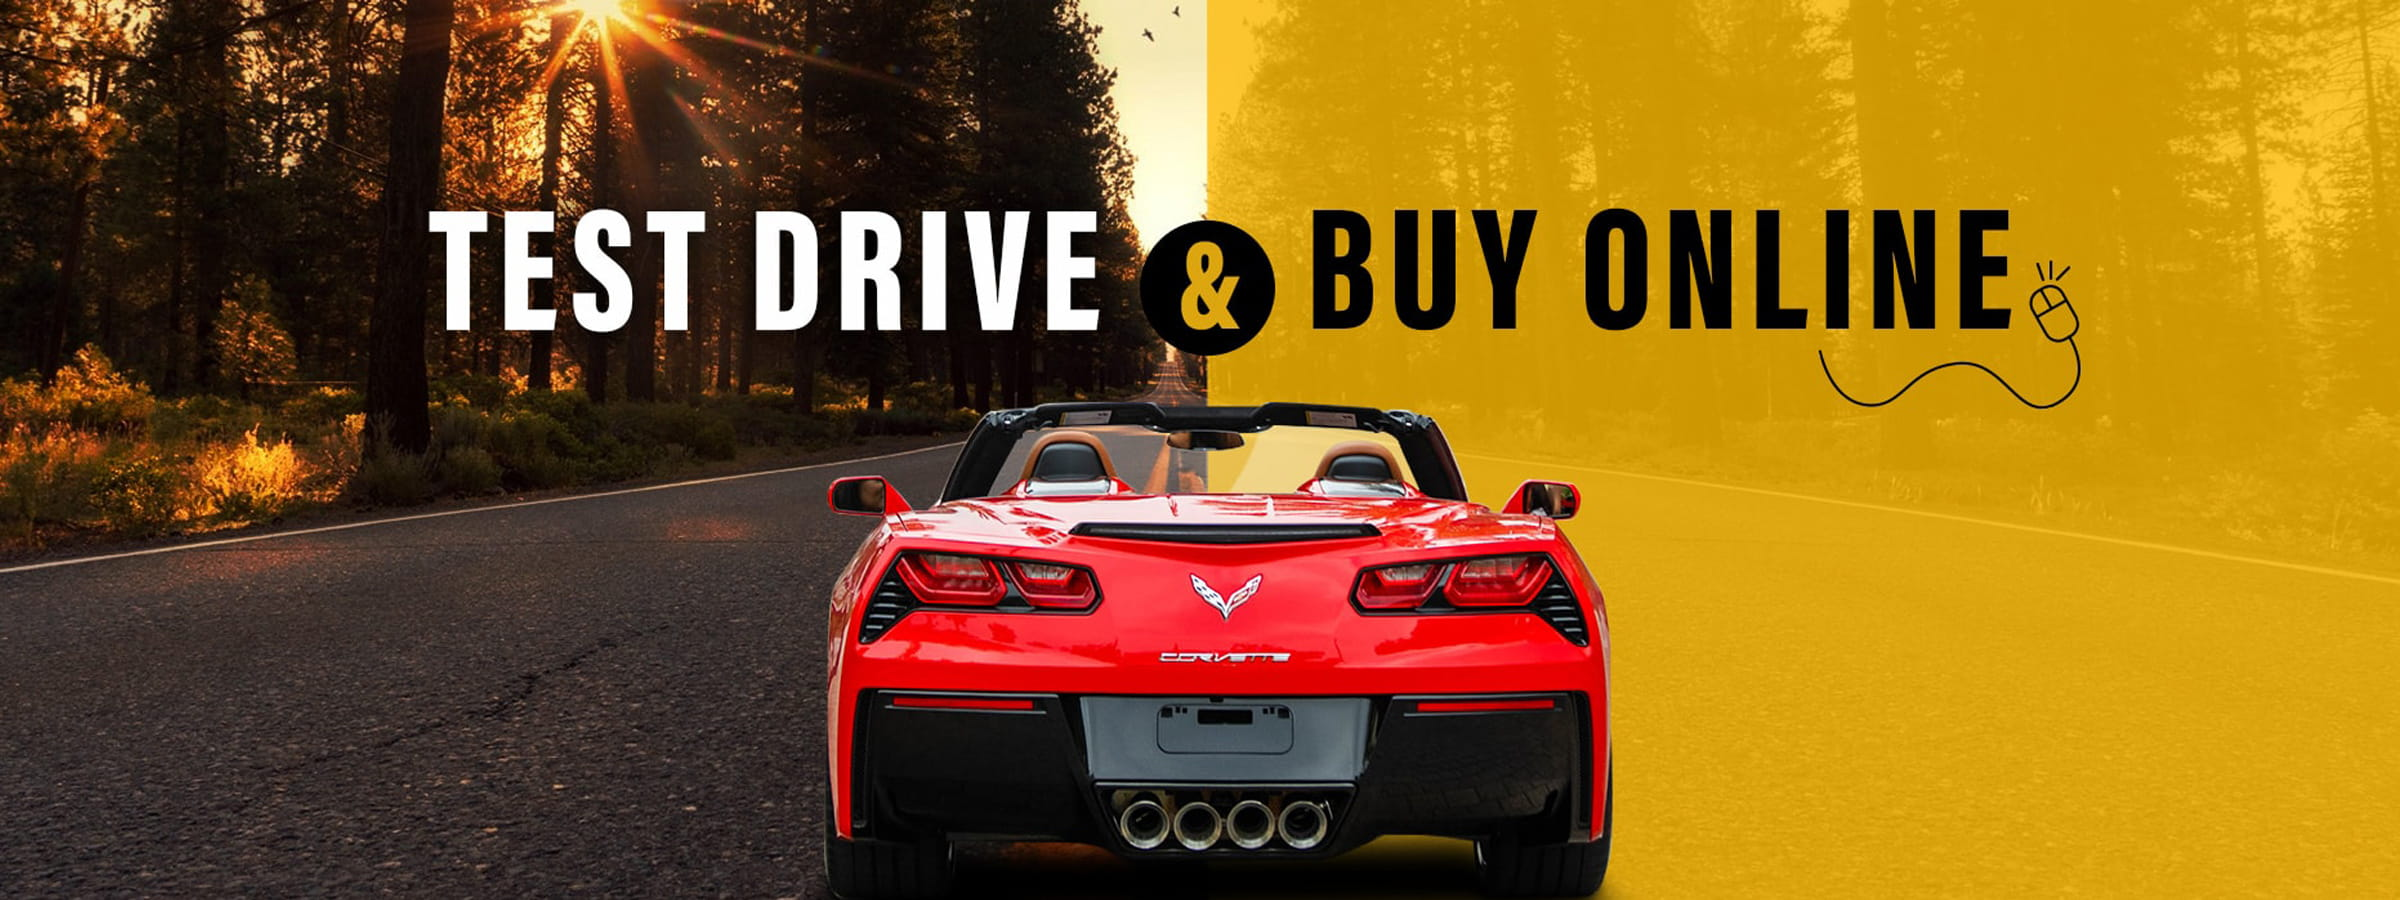 Used Car Dealer in Burleson, TX, Test Drive and Buy Online for easy transaction.